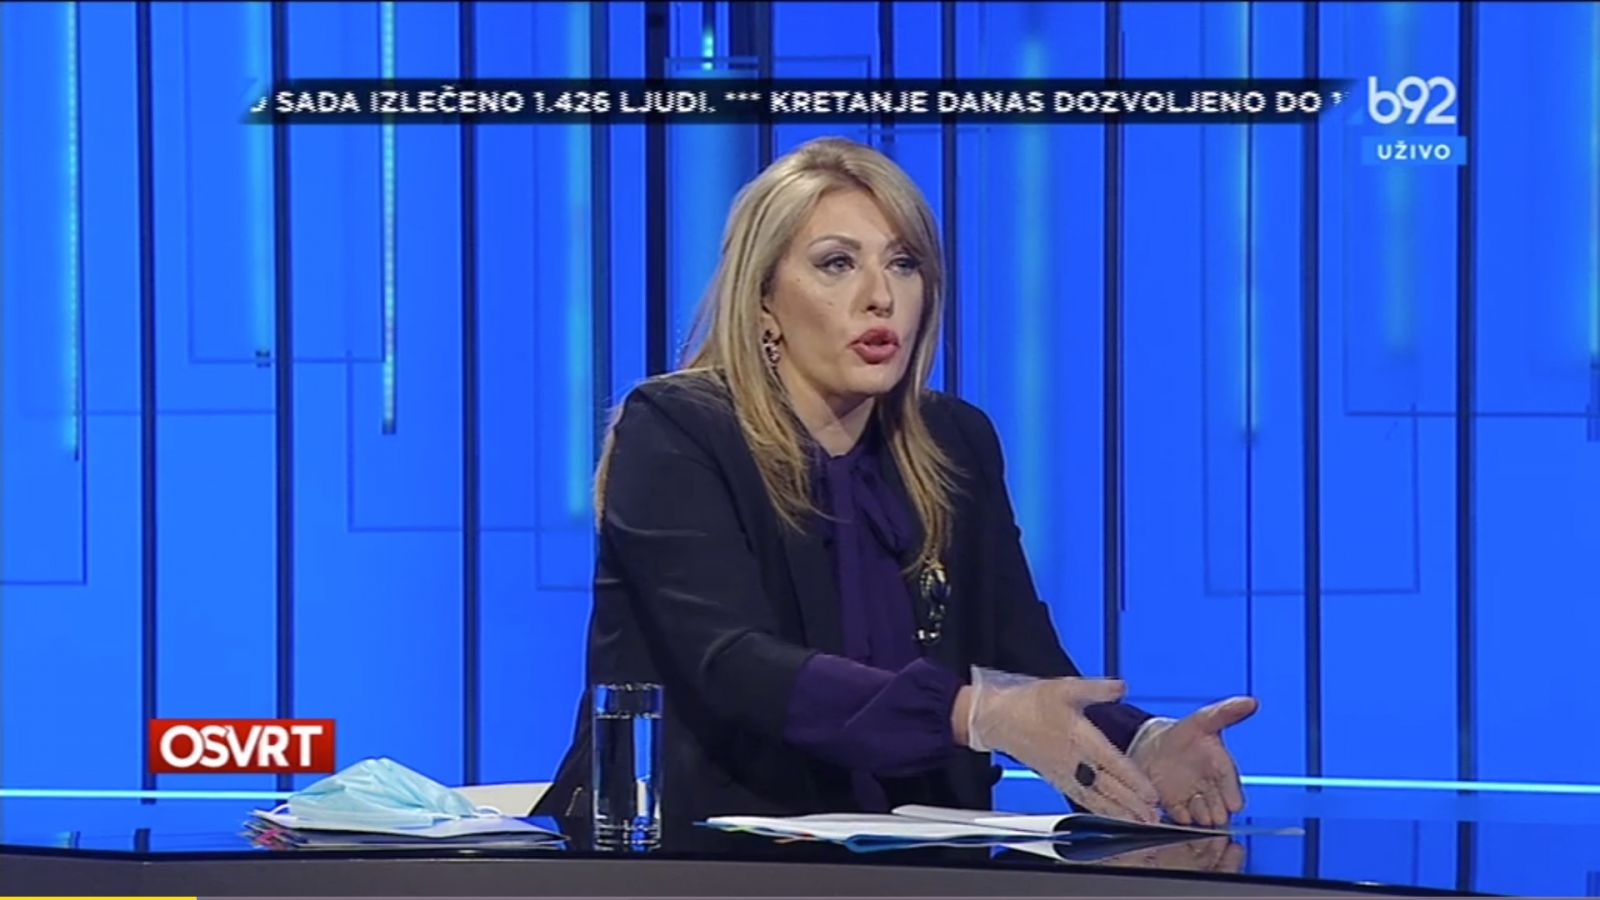 J. Joksimović: Serbia has successfully responded to the crisis owing to implemented reforms